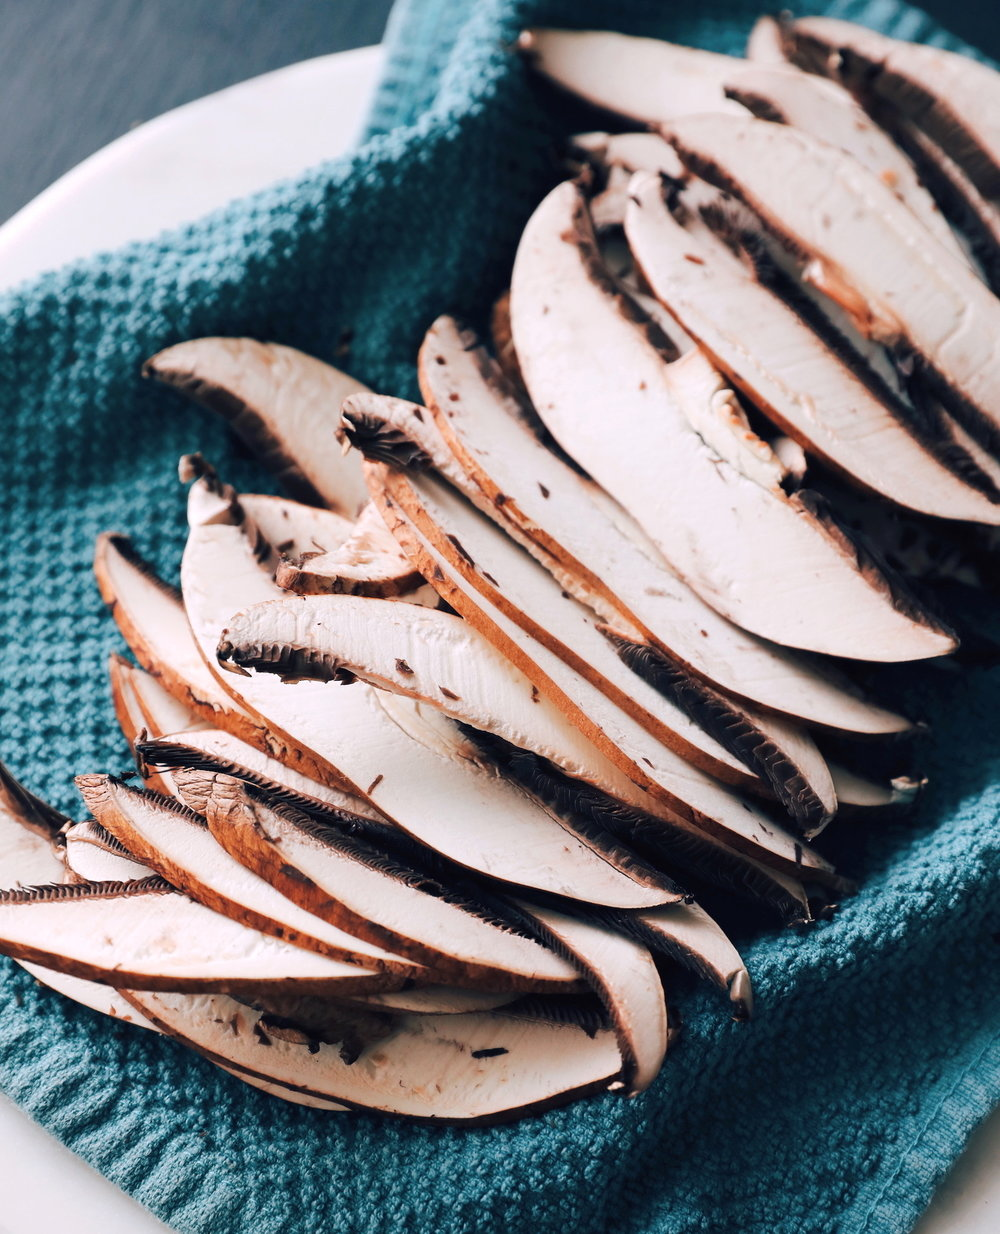 Portobello mushrooms thinly sliced with a sharp knife